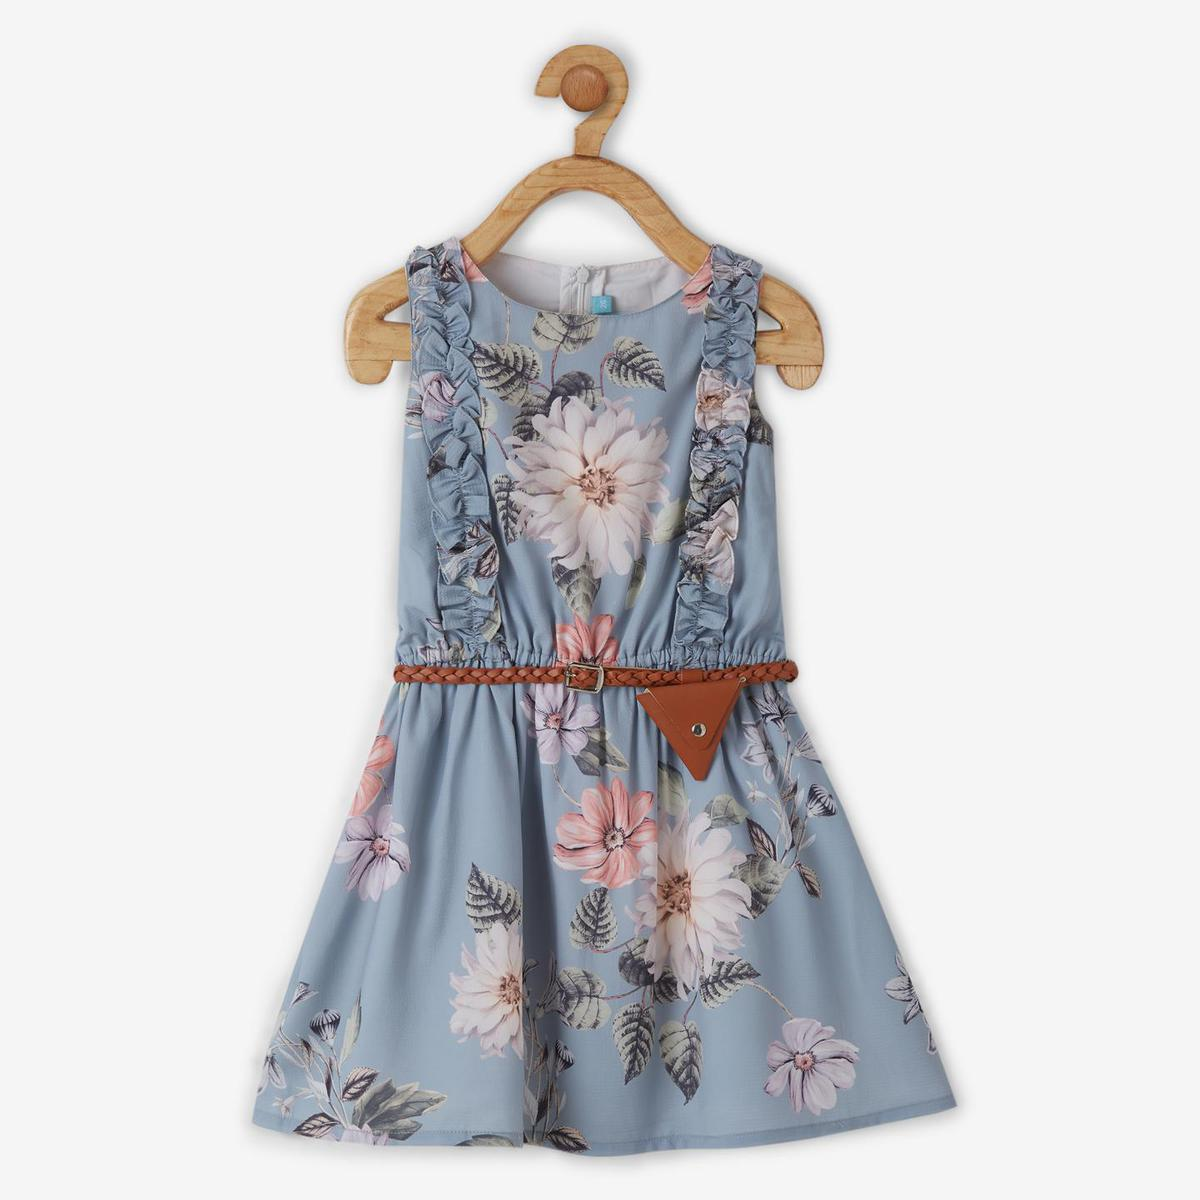 Powderfly Girls Light Blue Colored Floral Round Neck Mini Georgette Dress